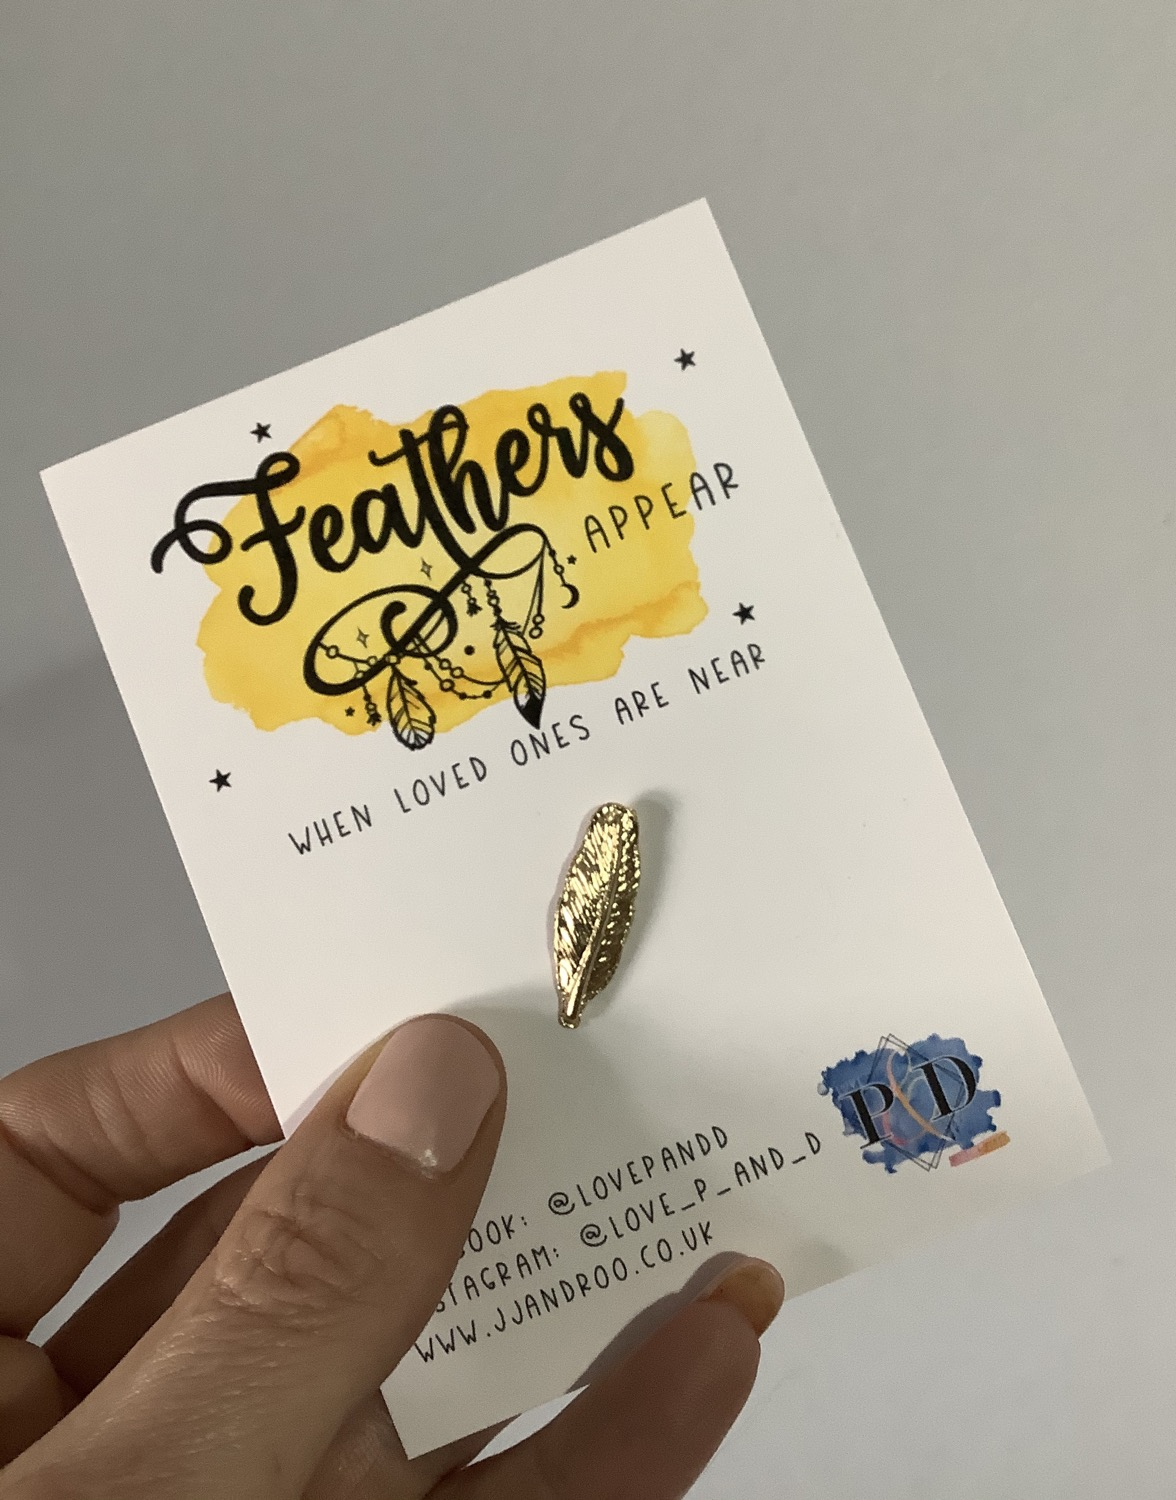 Feathers Appear: Positivity/Motivational/Remembrance Pin Badge